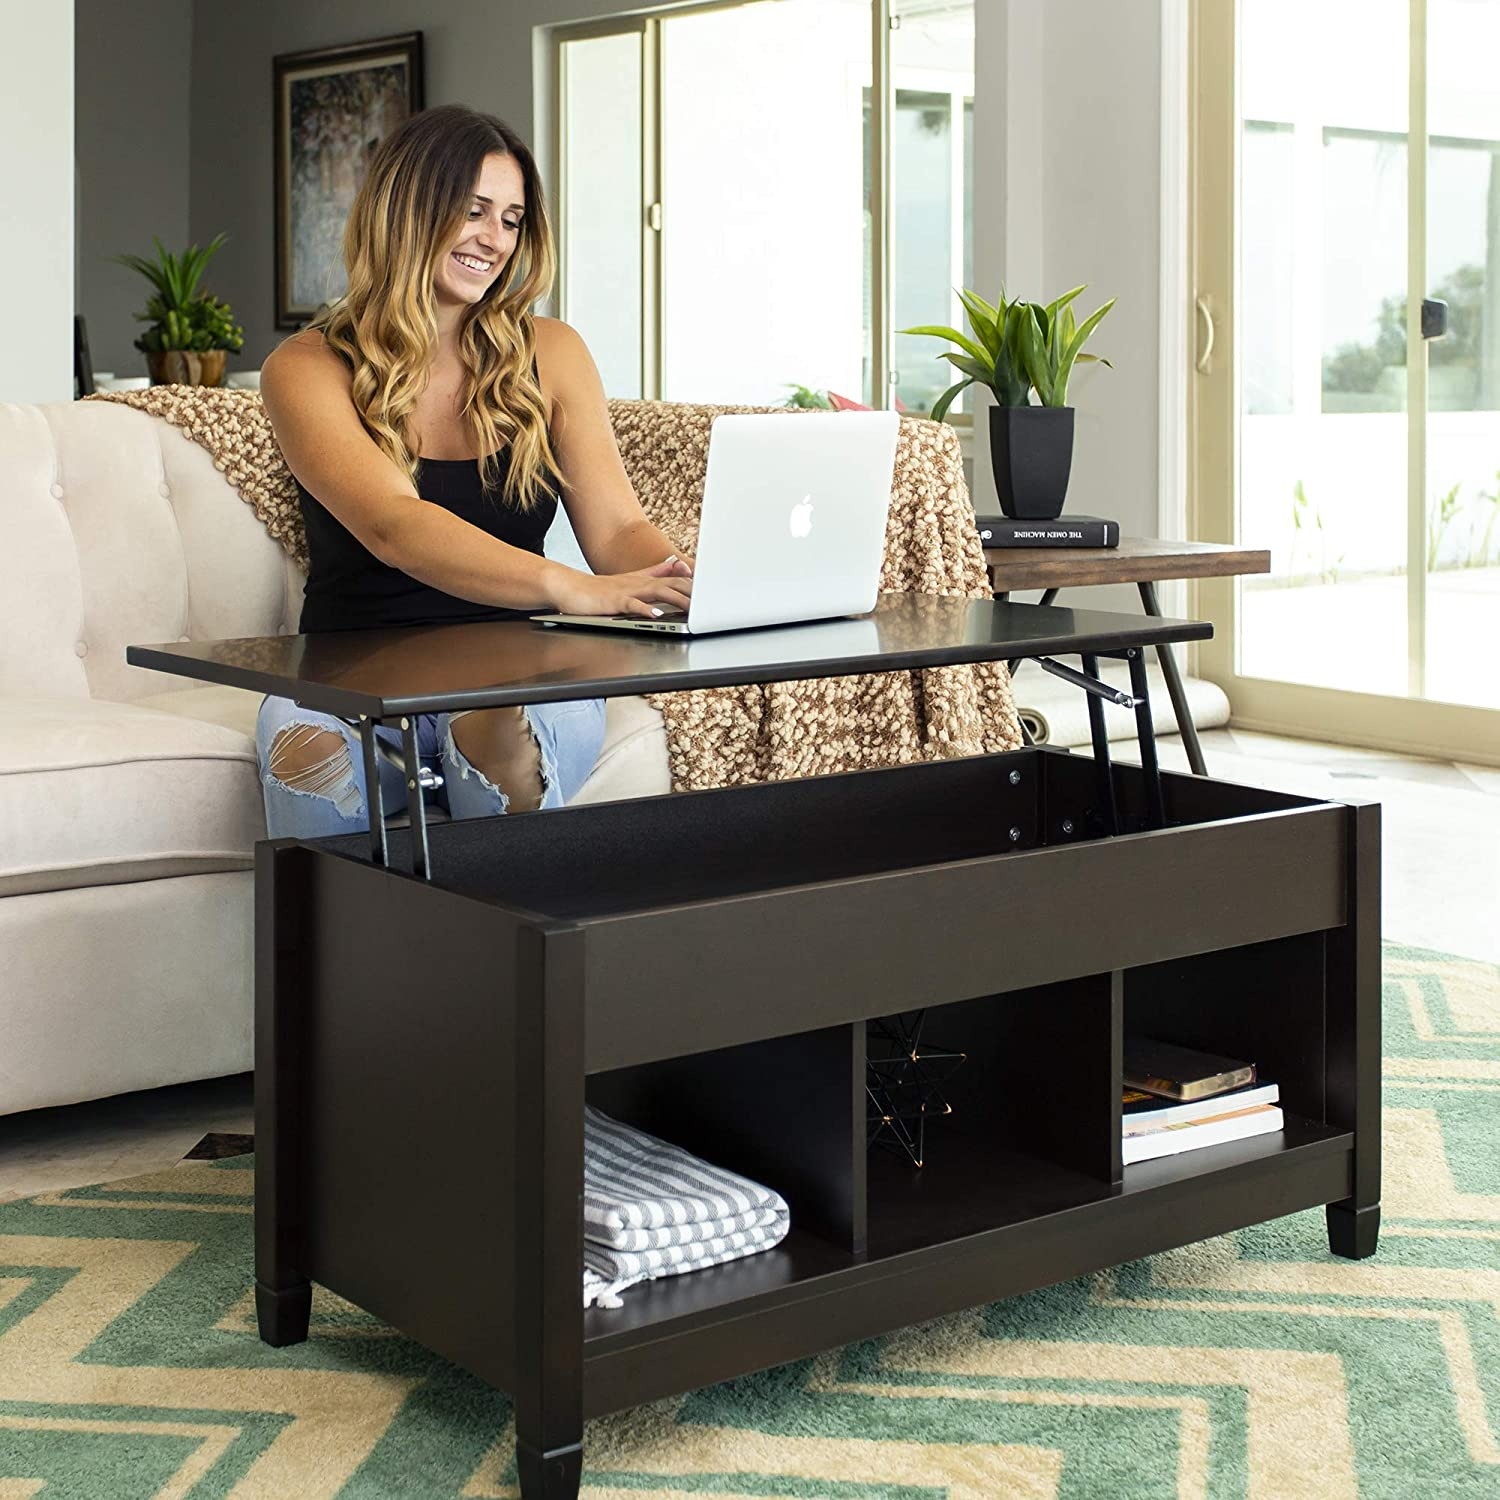 Wooden Modern Multifunctional Coffee Dining Table for Living Room